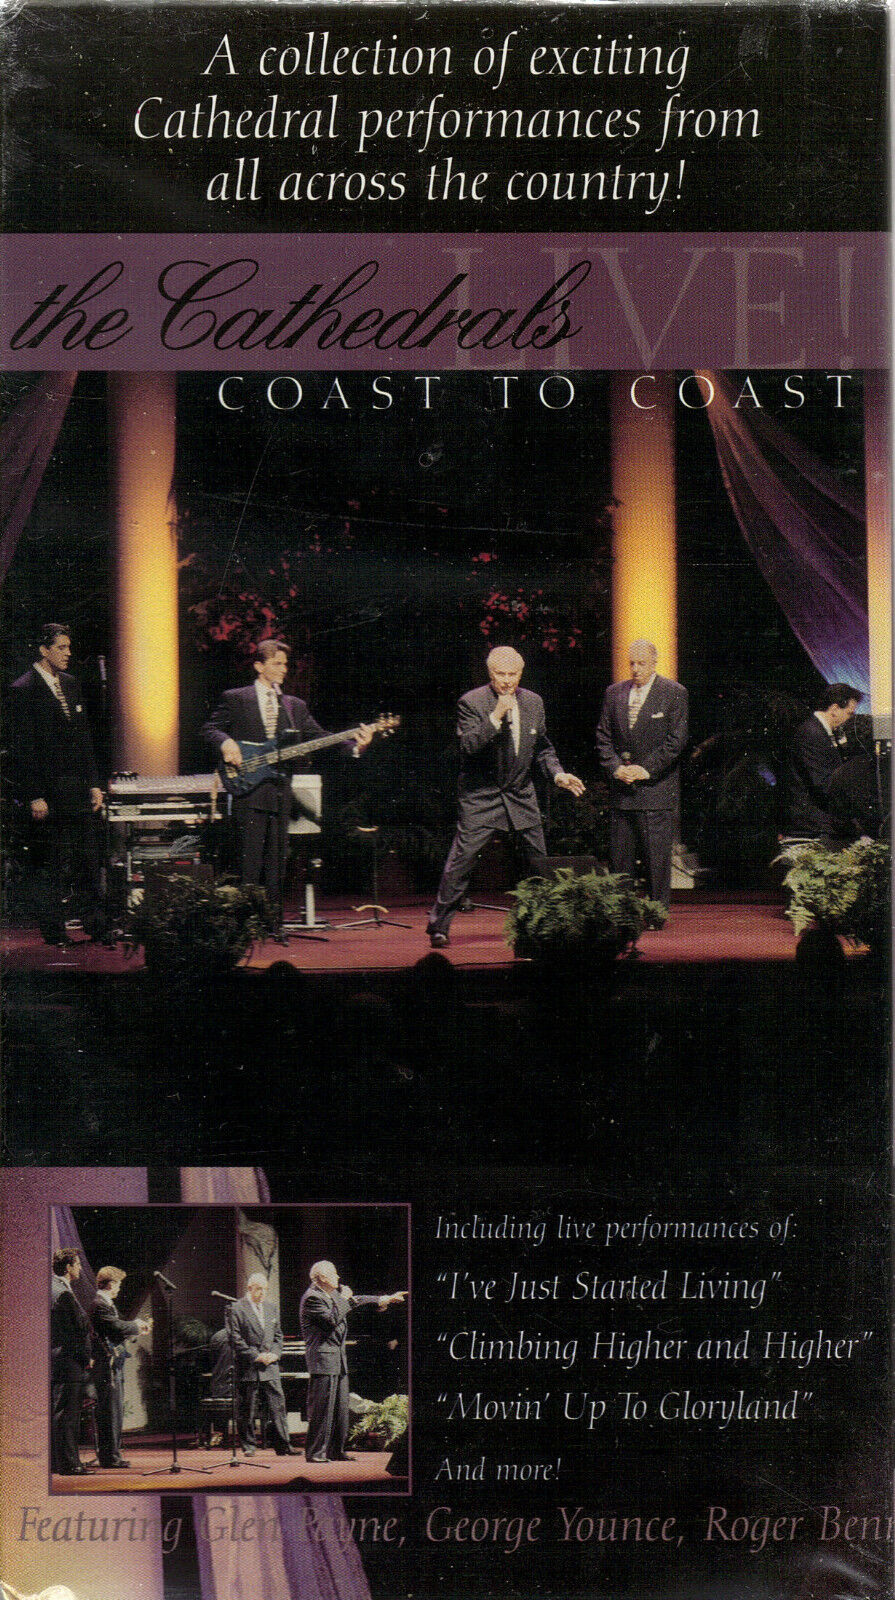 The Cathedrals....live Coast To Coast.....new Sealed Live Gospel Concert Video